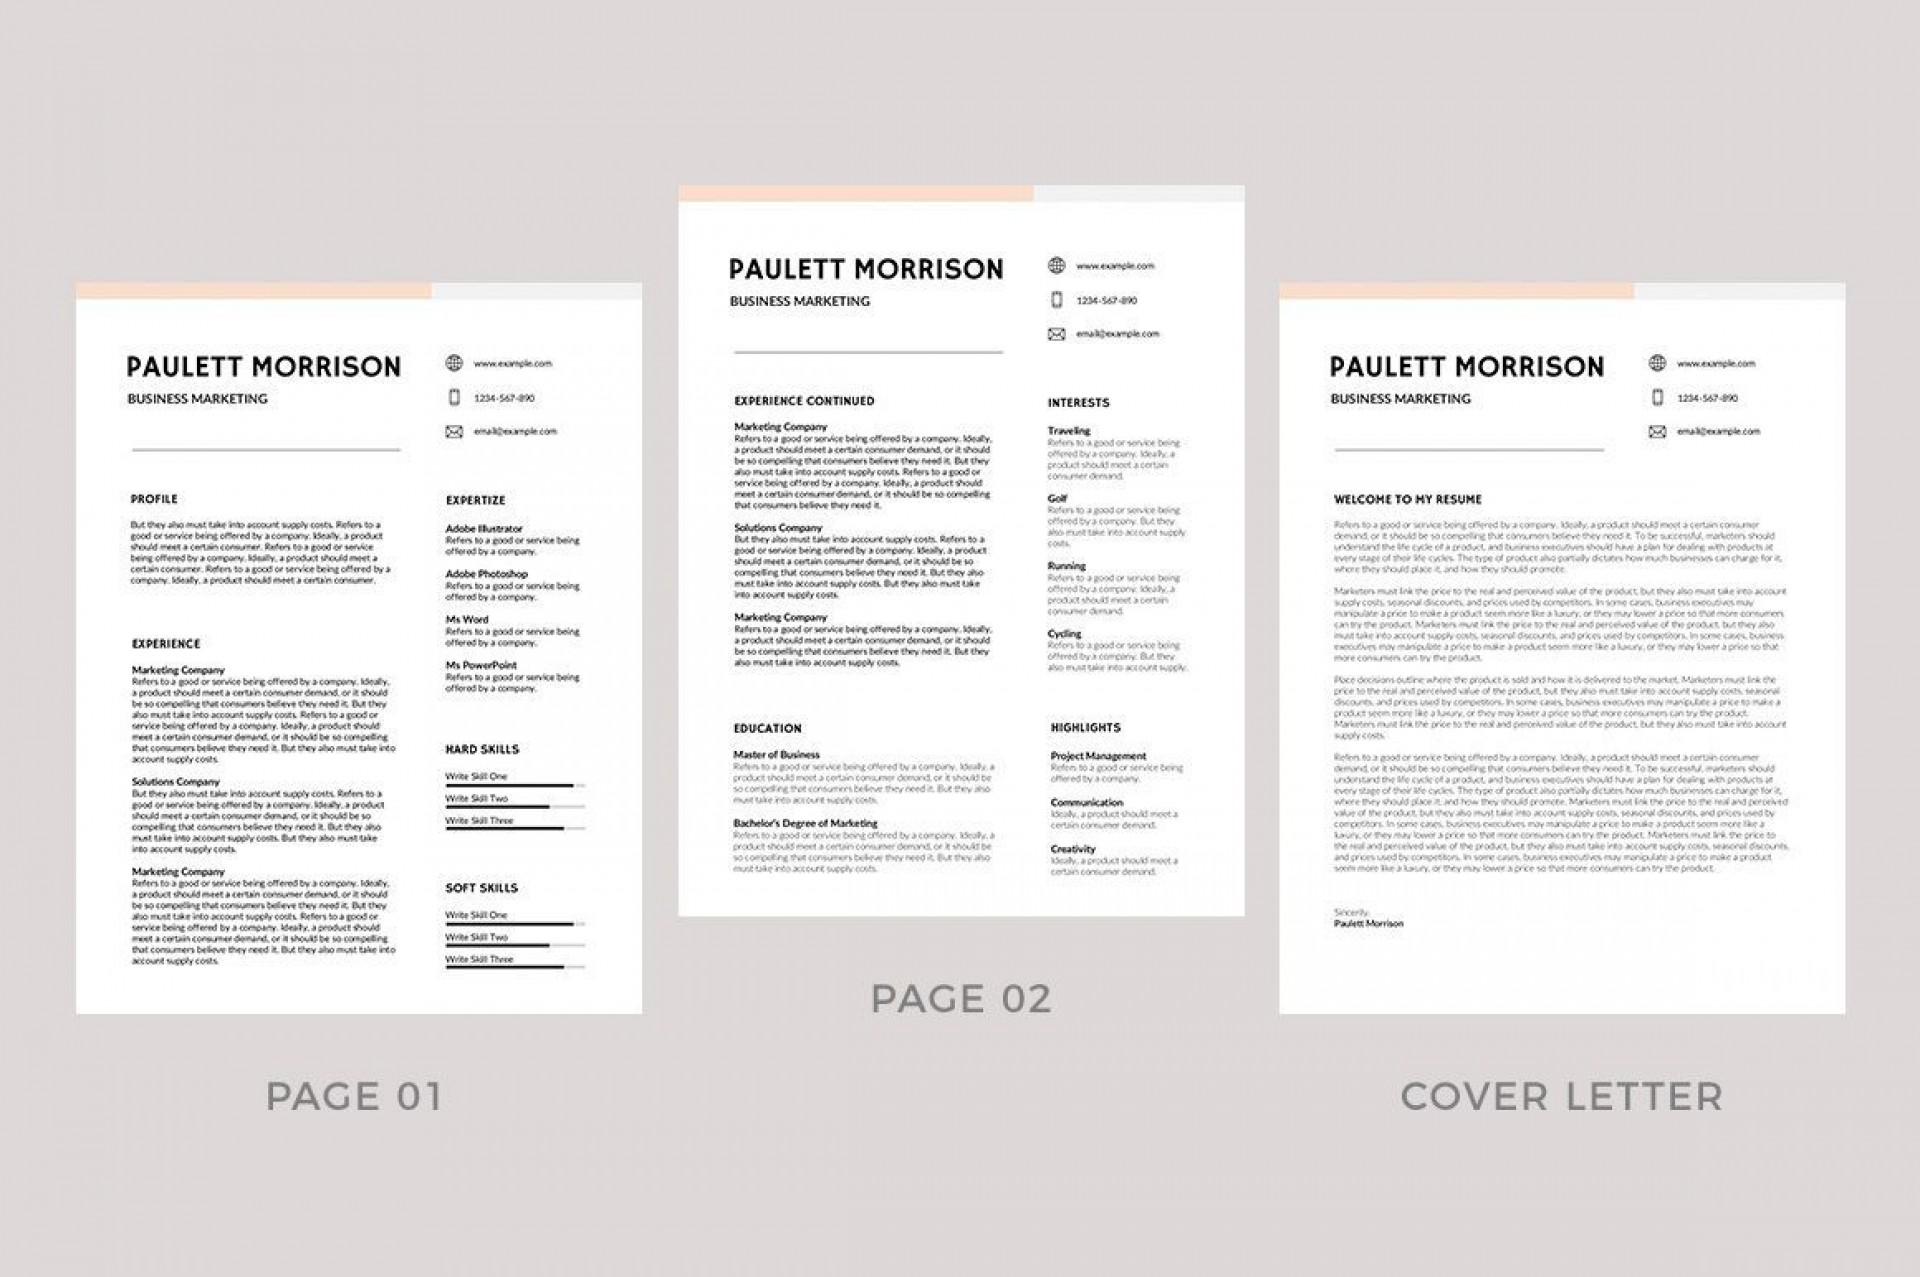 009 Remarkable Professional Resume Template 2018 Free Download High Definition 1920